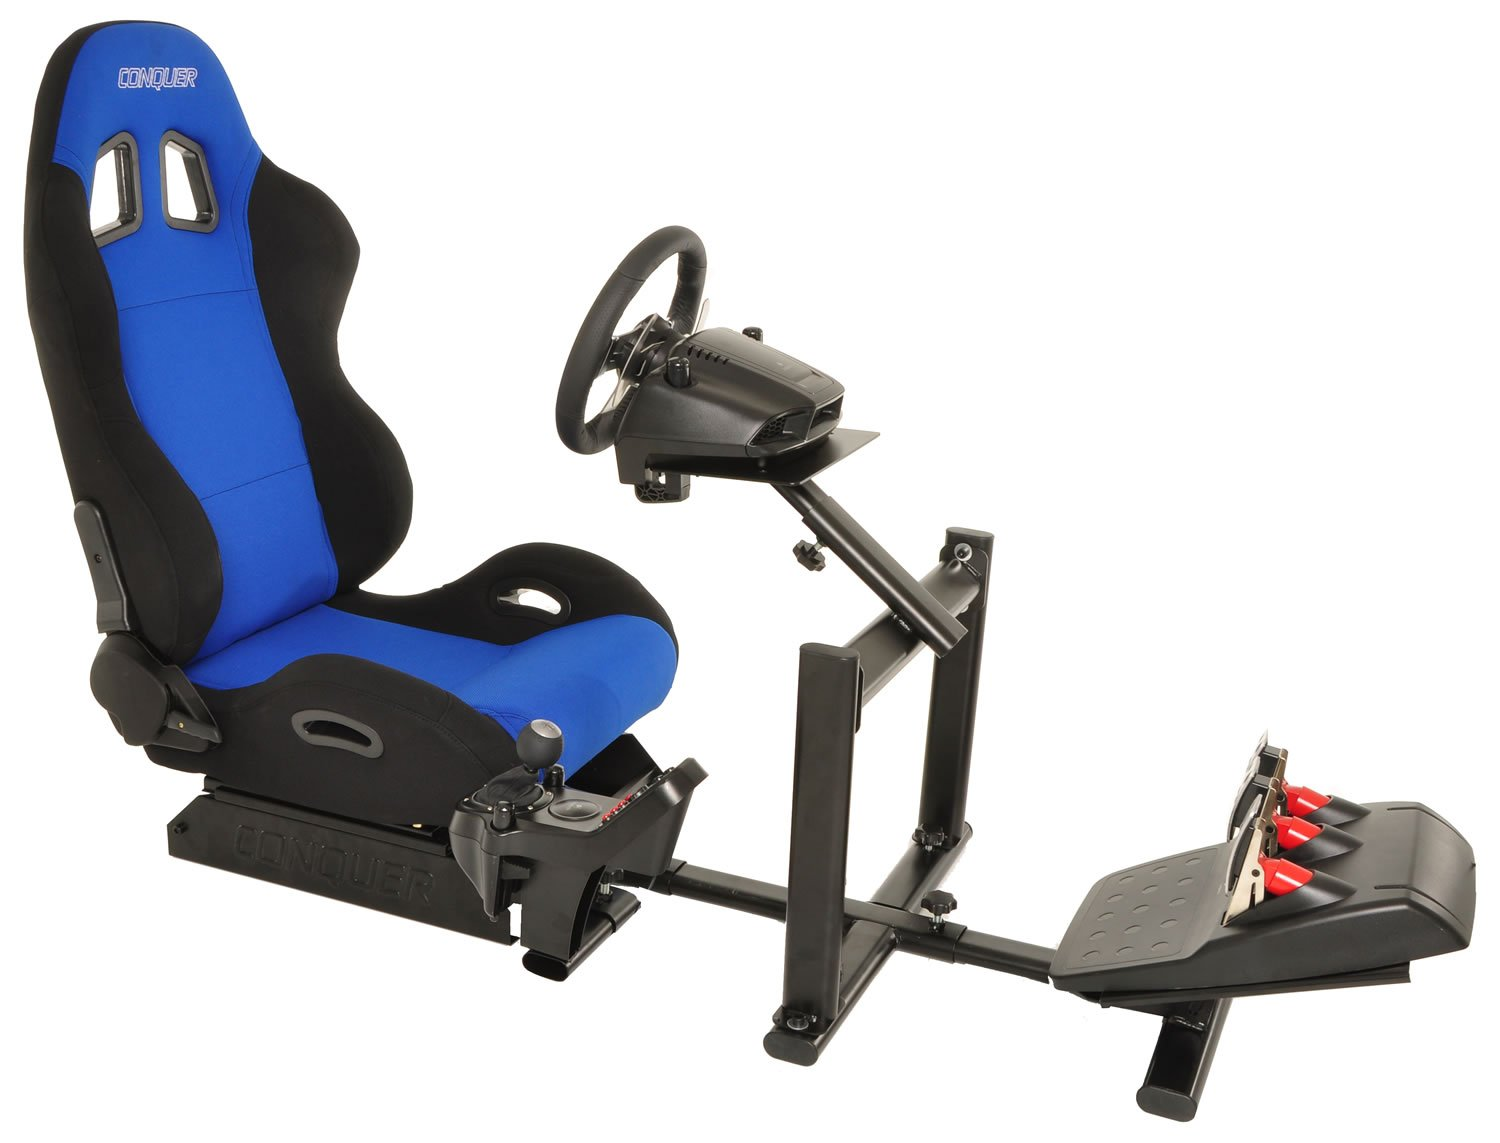 Conquer Racing Simulator Cockpit